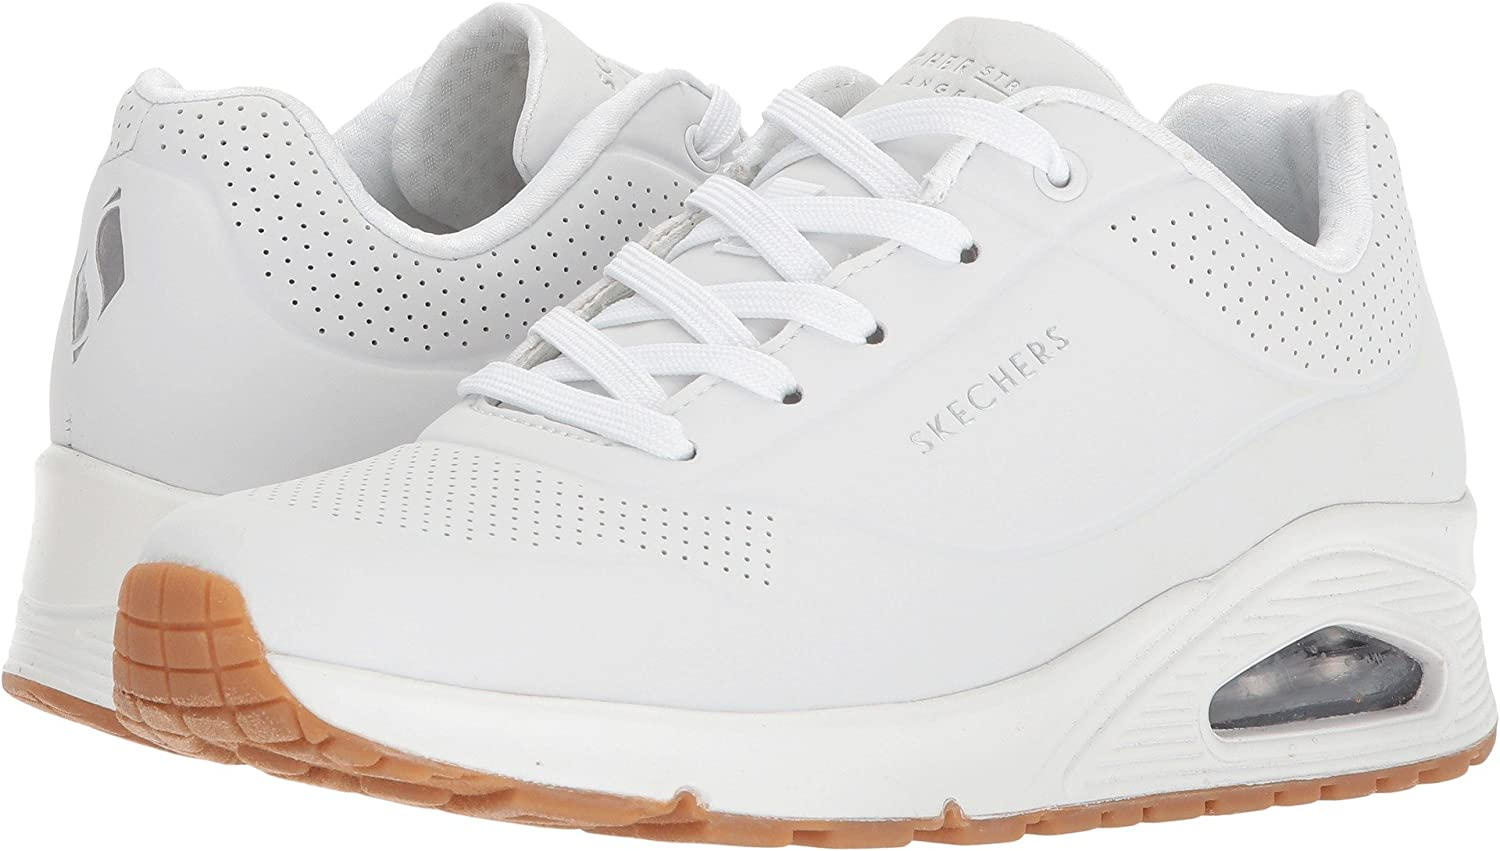 Amazon Com Skechers Women S Street Uno Stand On Air Sneaker Fashion Sneakers